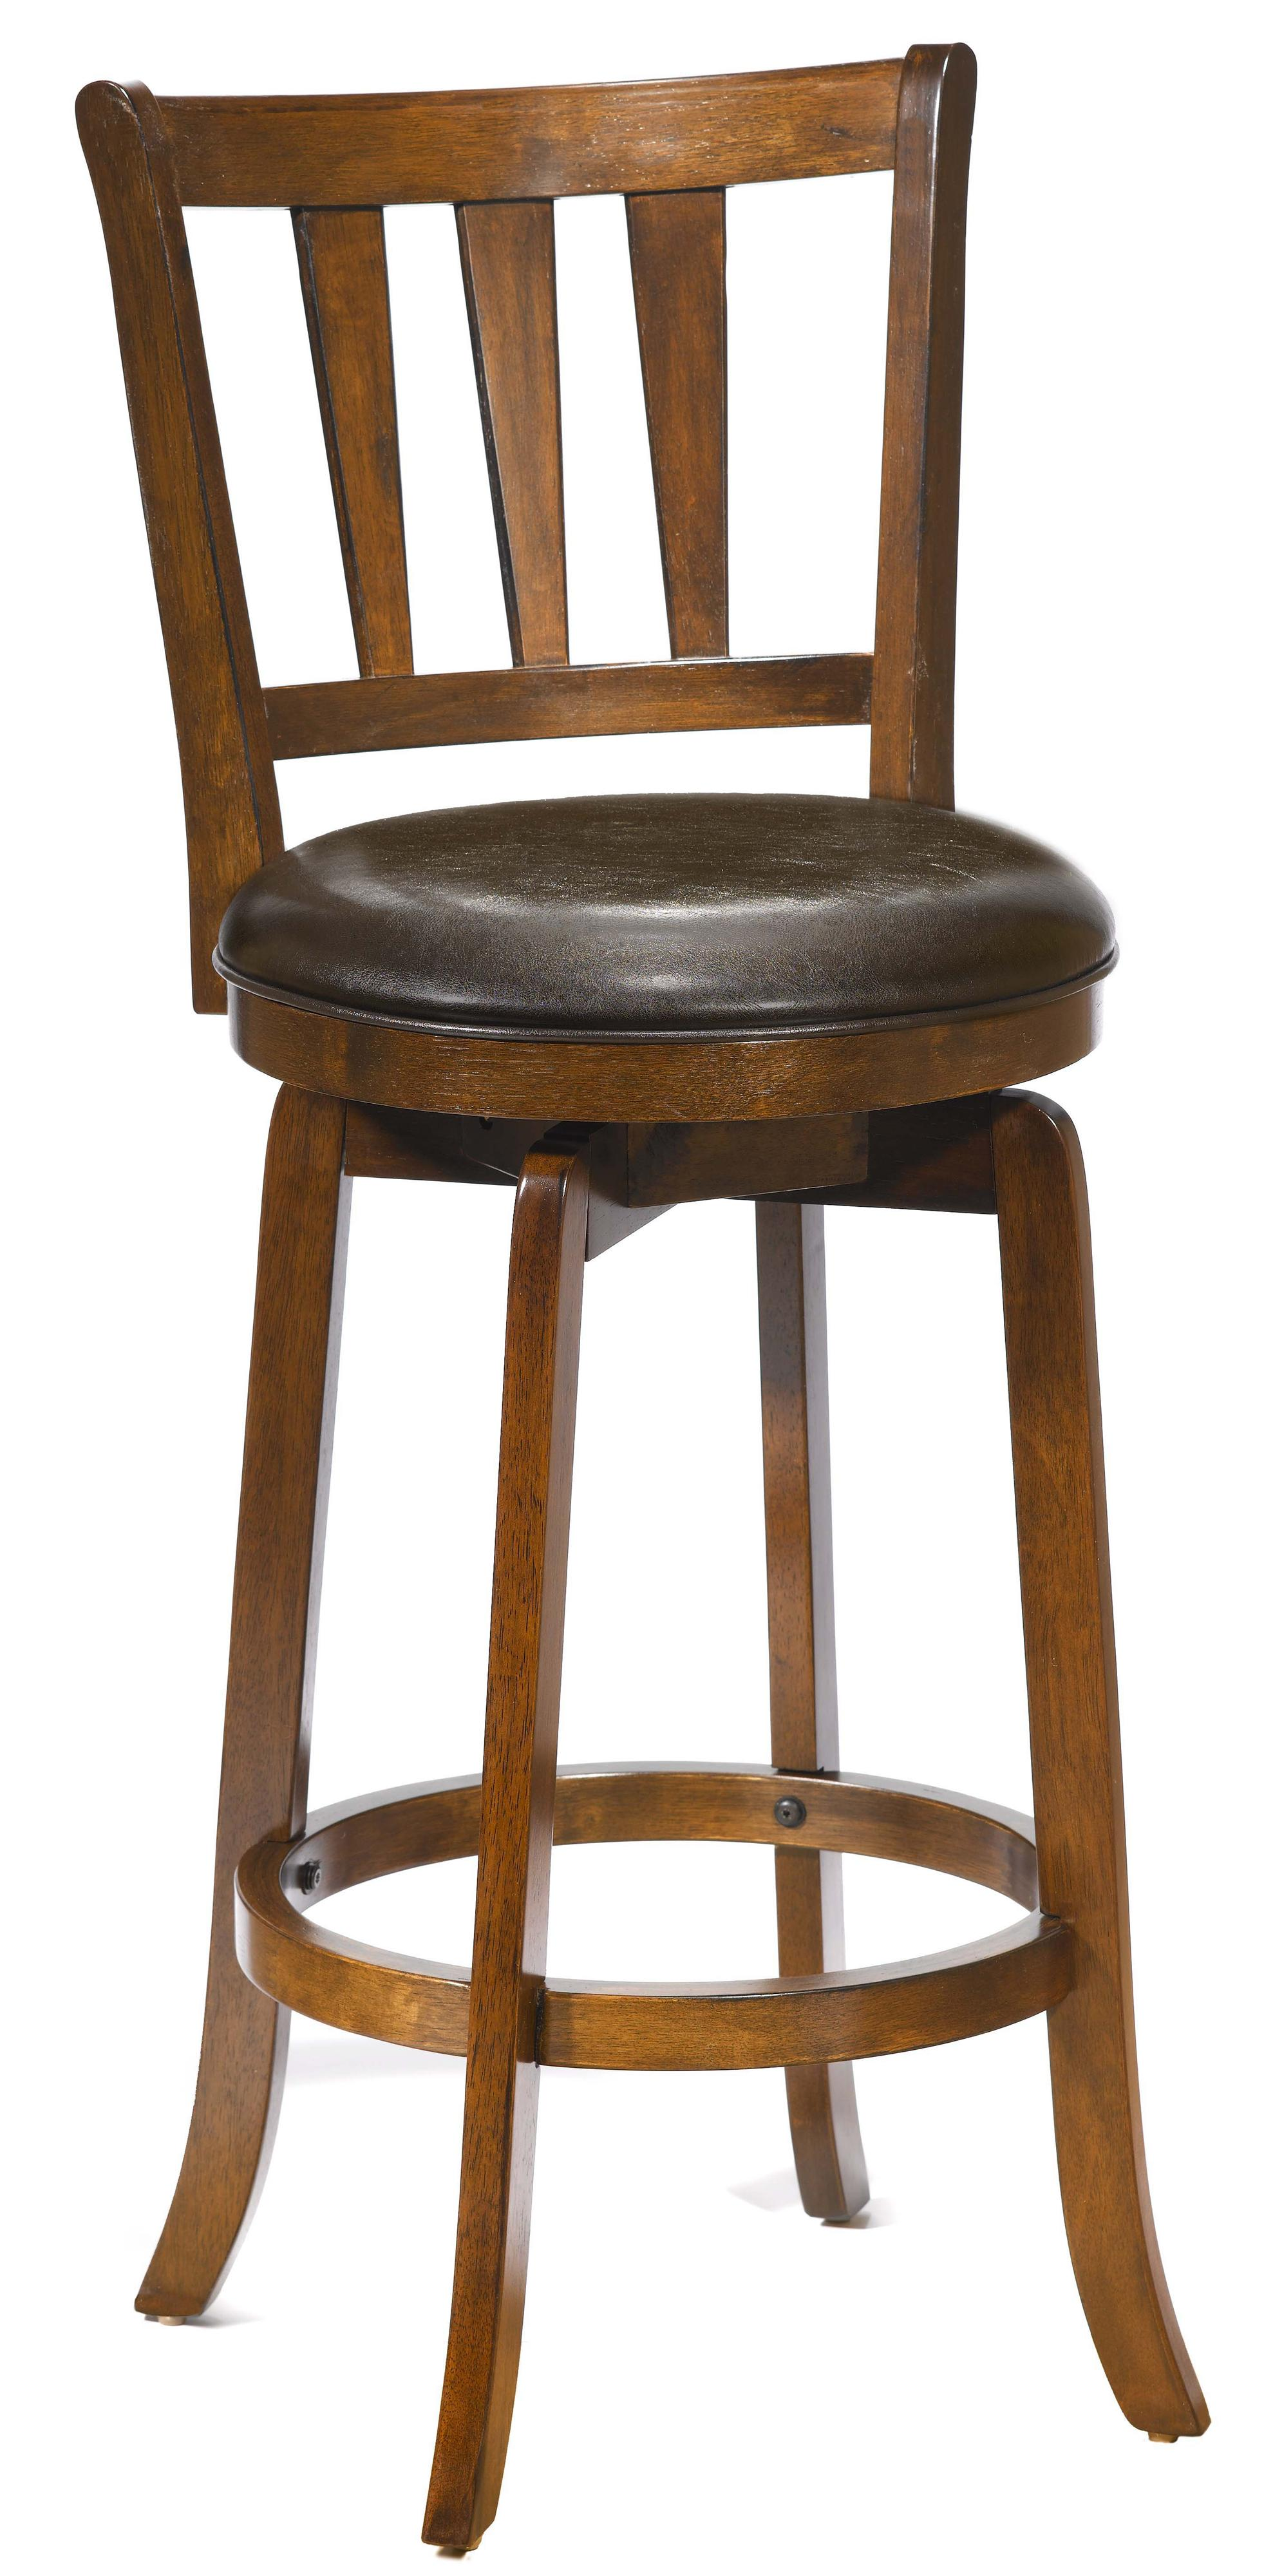 Swell Wood Stools 26 Counter Height Presque Isle Swivel Bar Stool By Hillsdale At Lindys Furniture Company Ocoug Best Dining Table And Chair Ideas Images Ocougorg